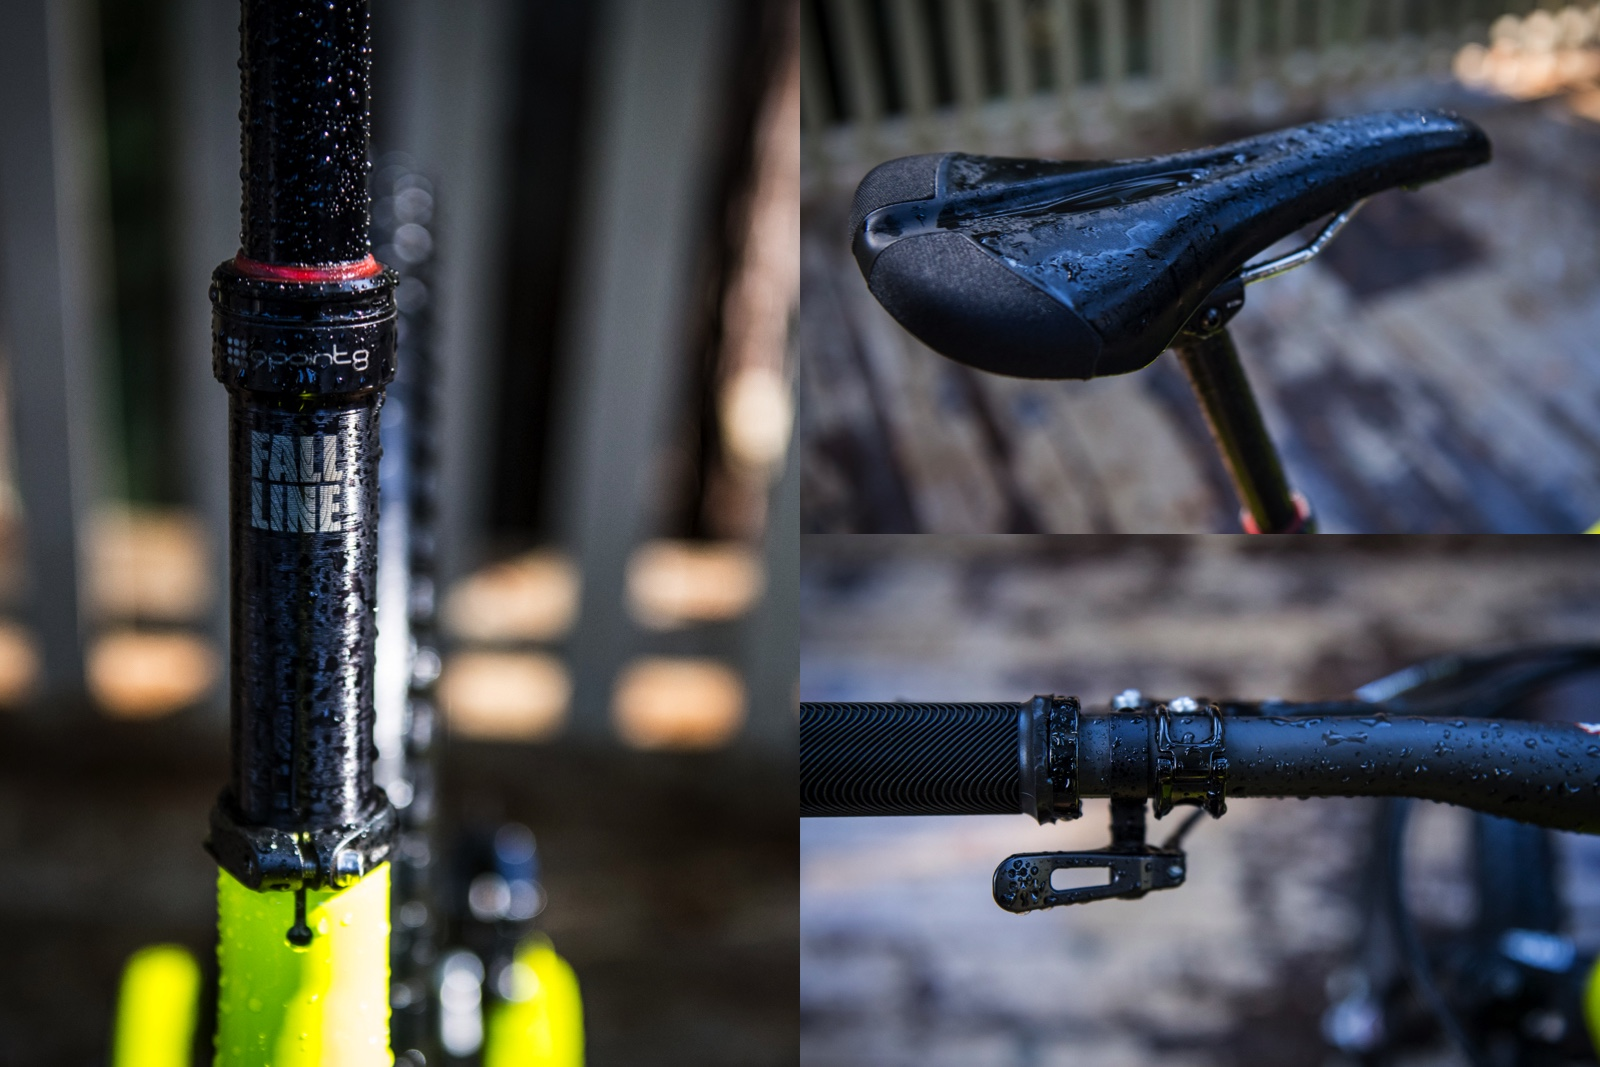 We're sitting on some new bits. The 9point8 Fall Line dropper post is a bit of a game changer. 150mm travel, internally routed. Look for a full review soon. Fizik's Monte enduro saddle has been making us smile so far.